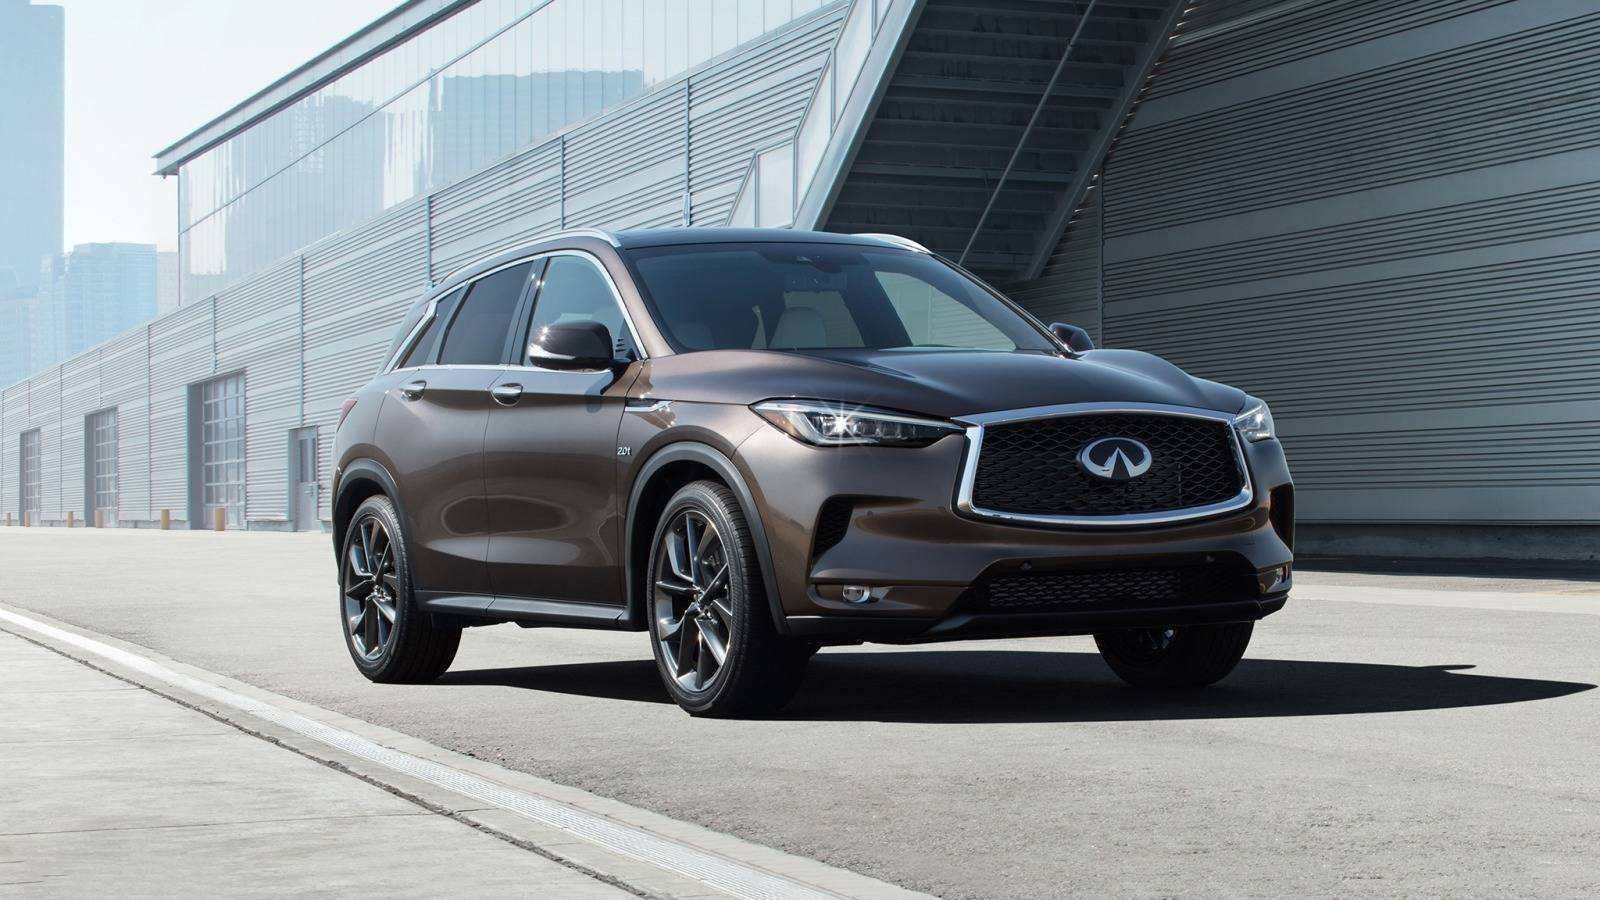 94 The 2019 Infiniti Vehicles Picture Prices with 2019 Infiniti Vehicles Picture